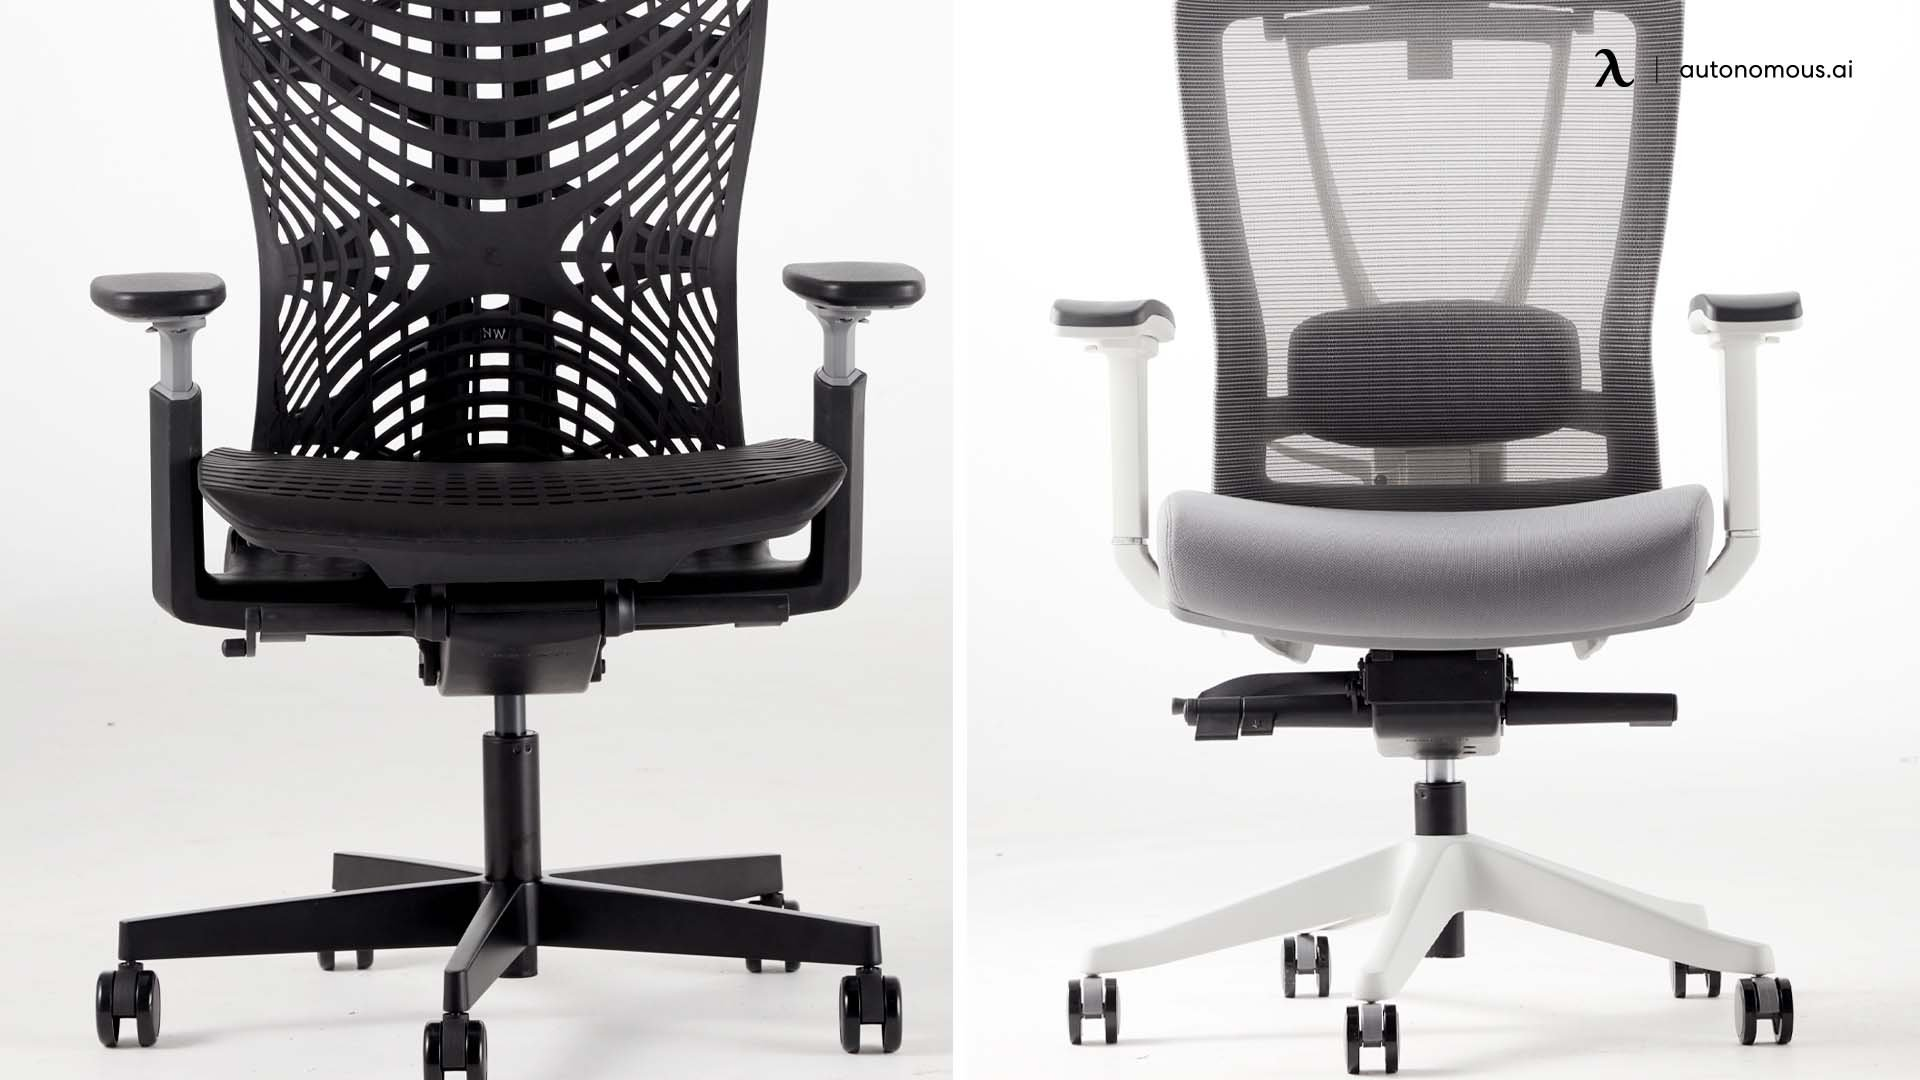 What Are the Most Important Features While Choosing an Office Chair for Tall People?